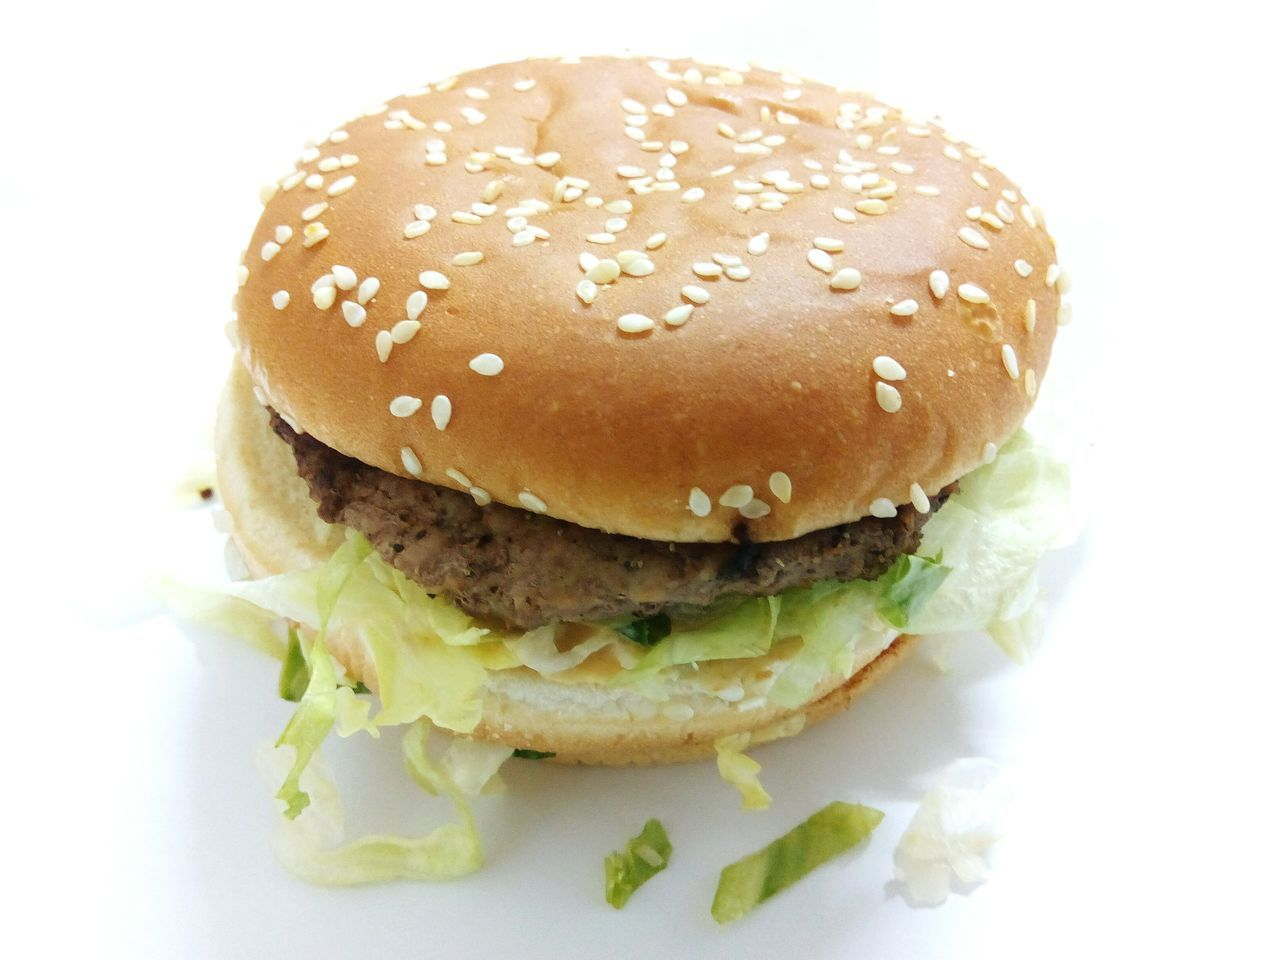 Hamburger Bread Burger Bun Food No People Sesame Seed Fast Food Close-up Ground Beef Day